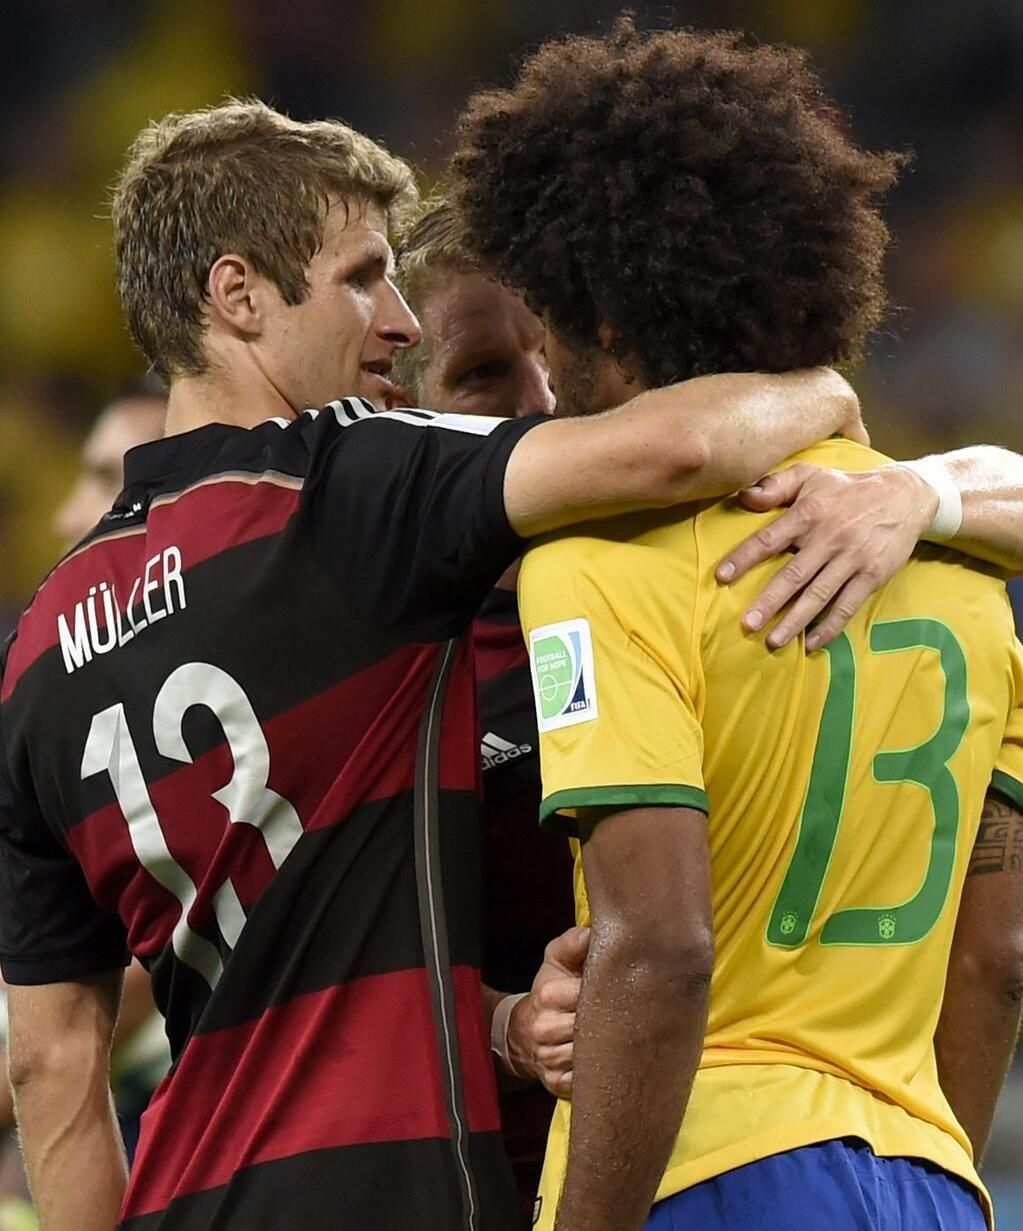 2014 World Cup Germany crushes Brazil in Brazil. I found